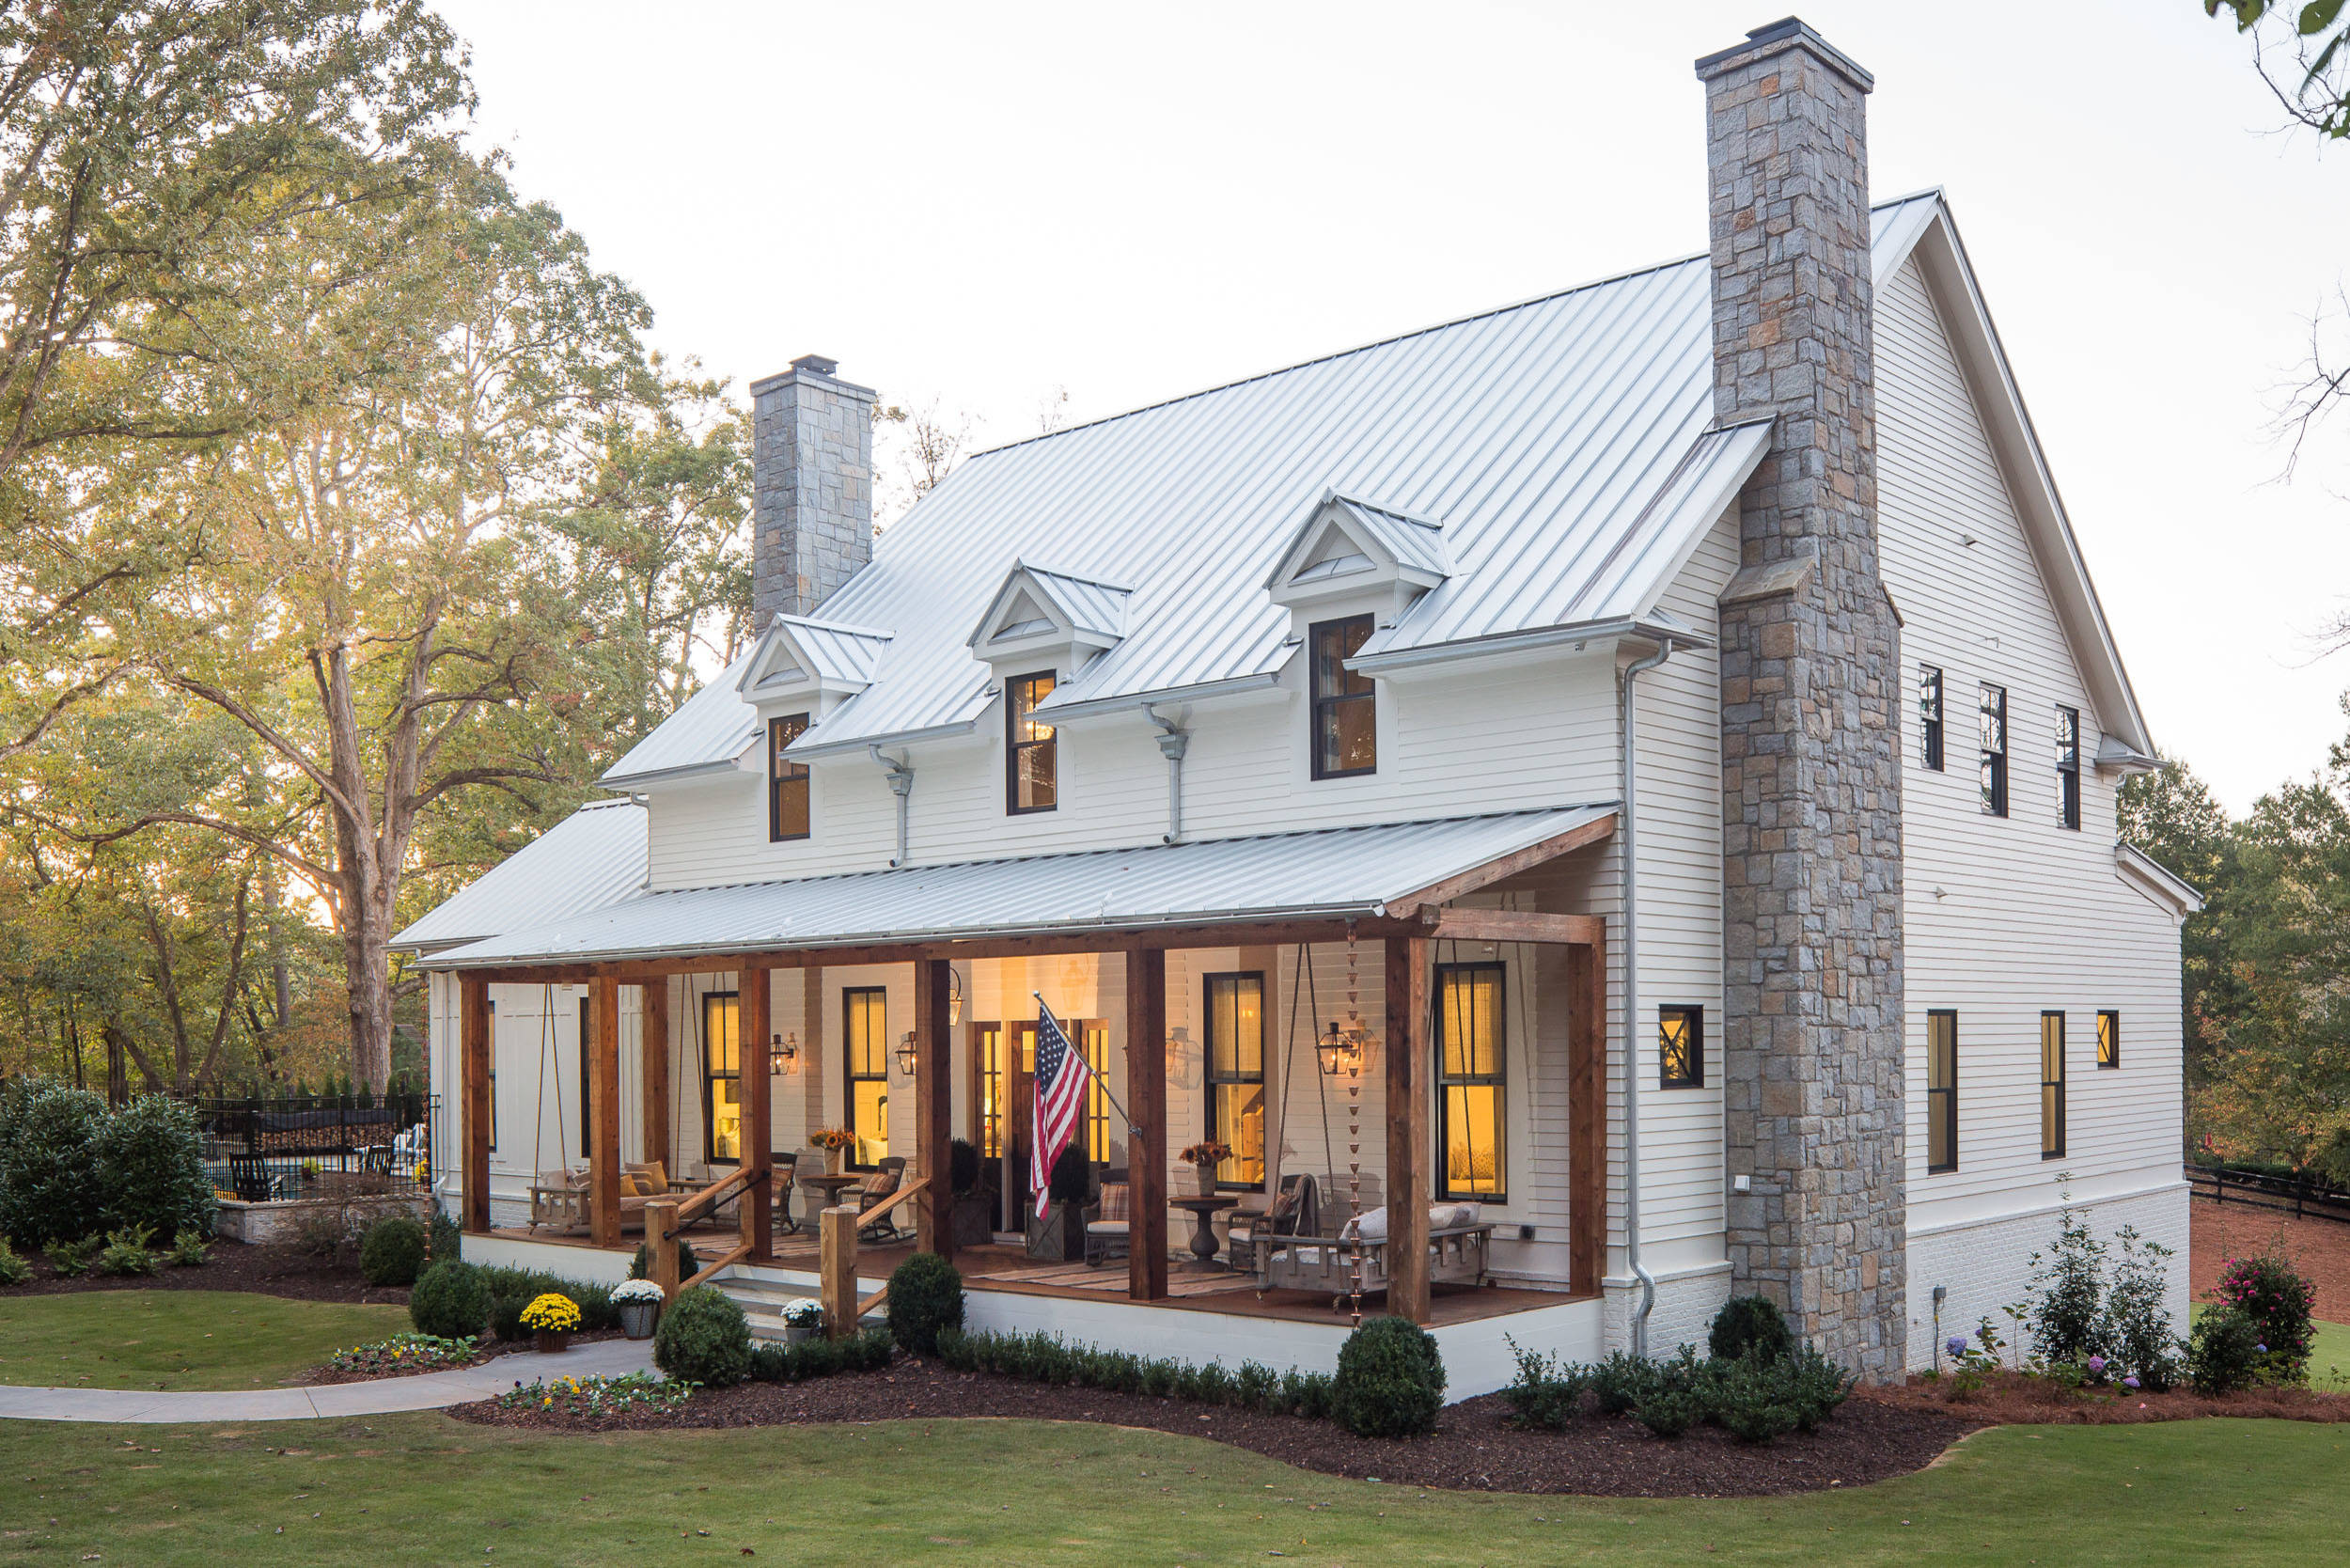 75 Beautiful Farmhouse Exterior Home With A Metal Roof Pictures Ideas March 2021 Houzz